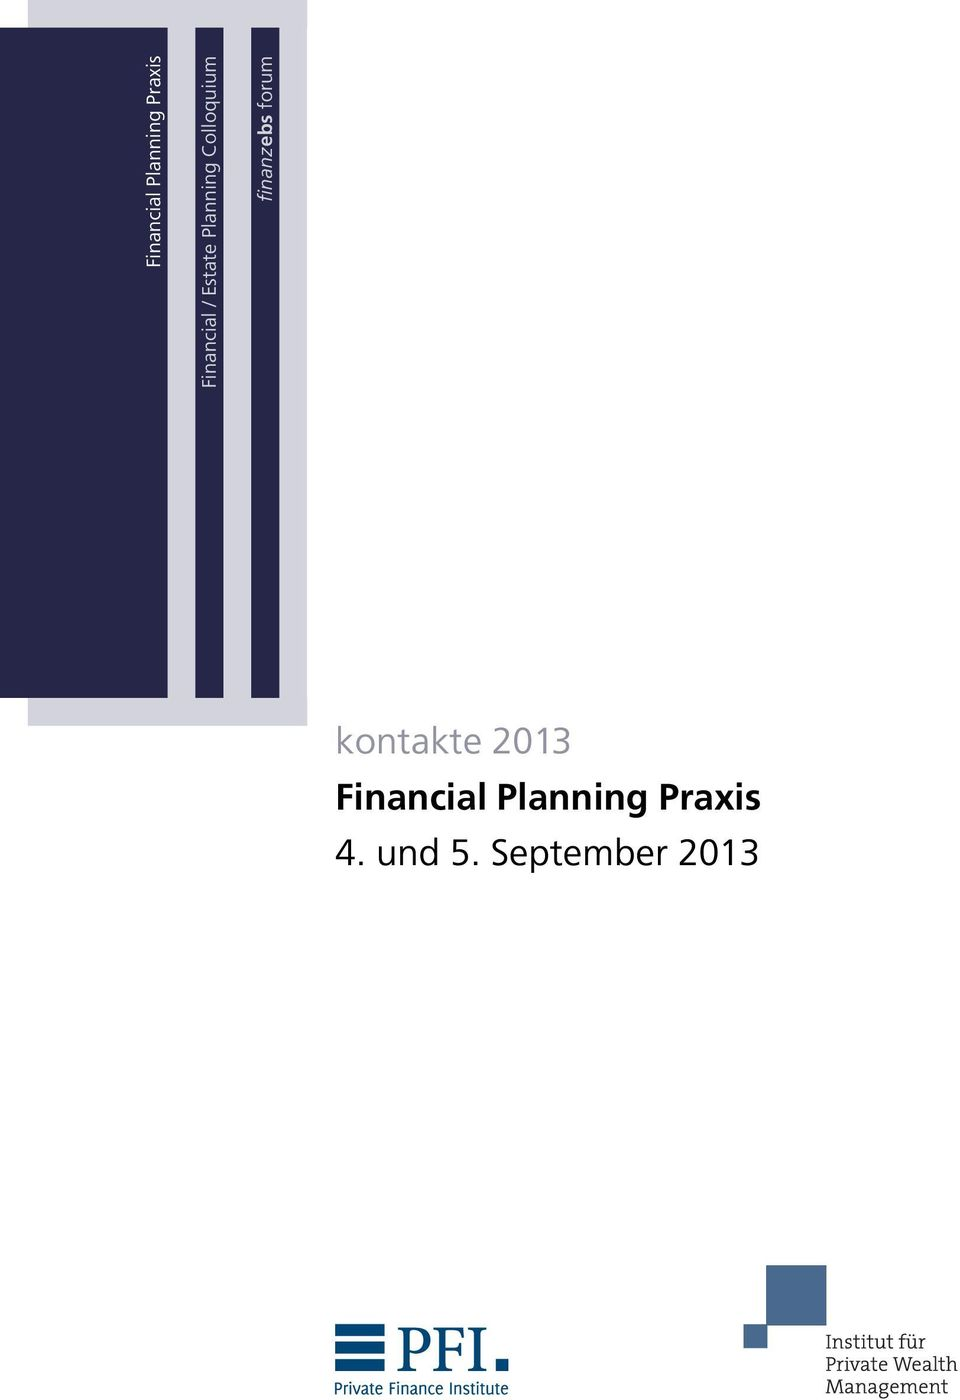 forum kontakte 2013 Financial Planning